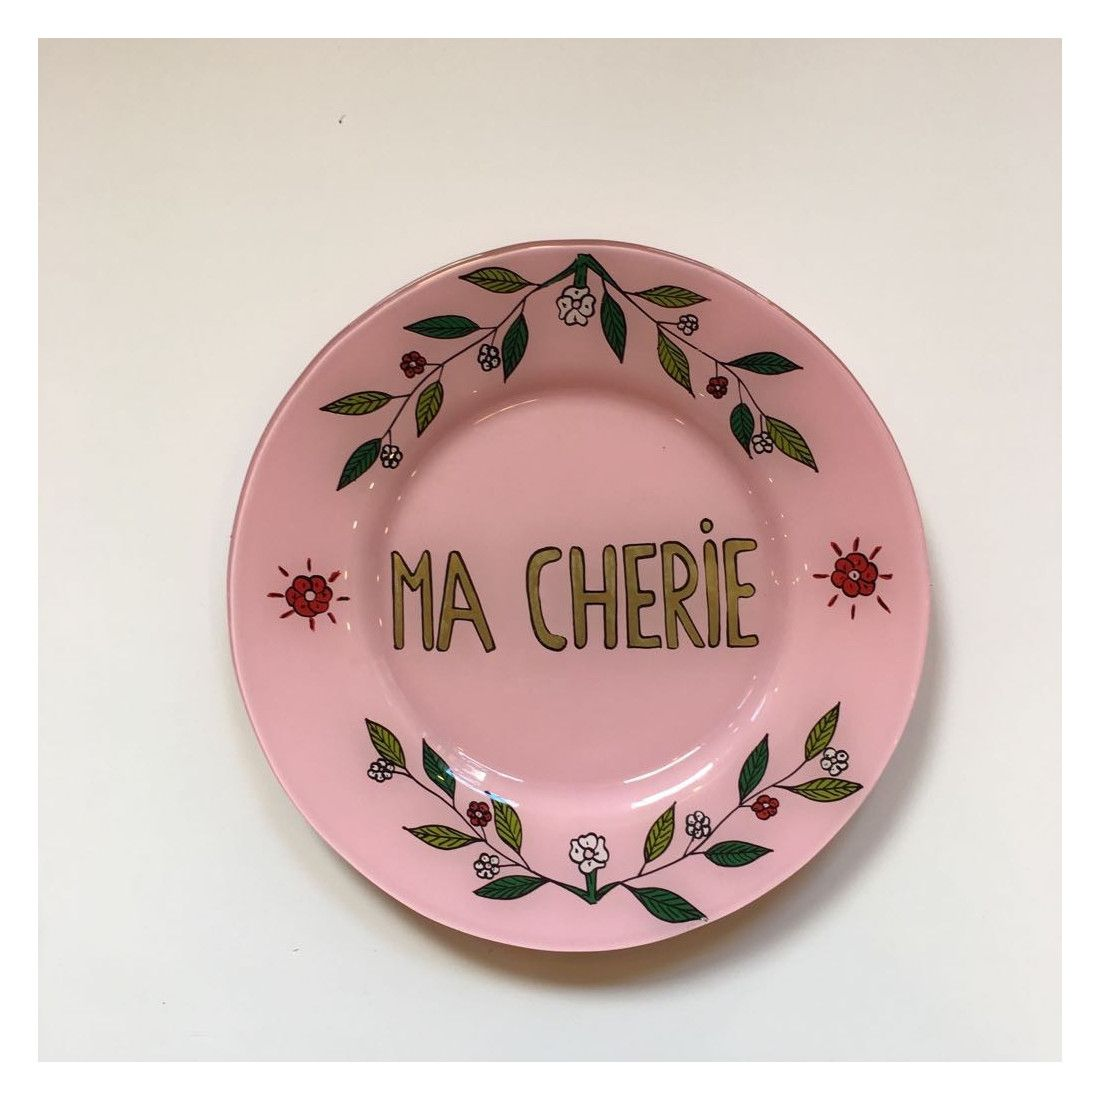 Hand Painted Pink Plate Ma Cherie Hand Painted Plates Plates Painted Plates